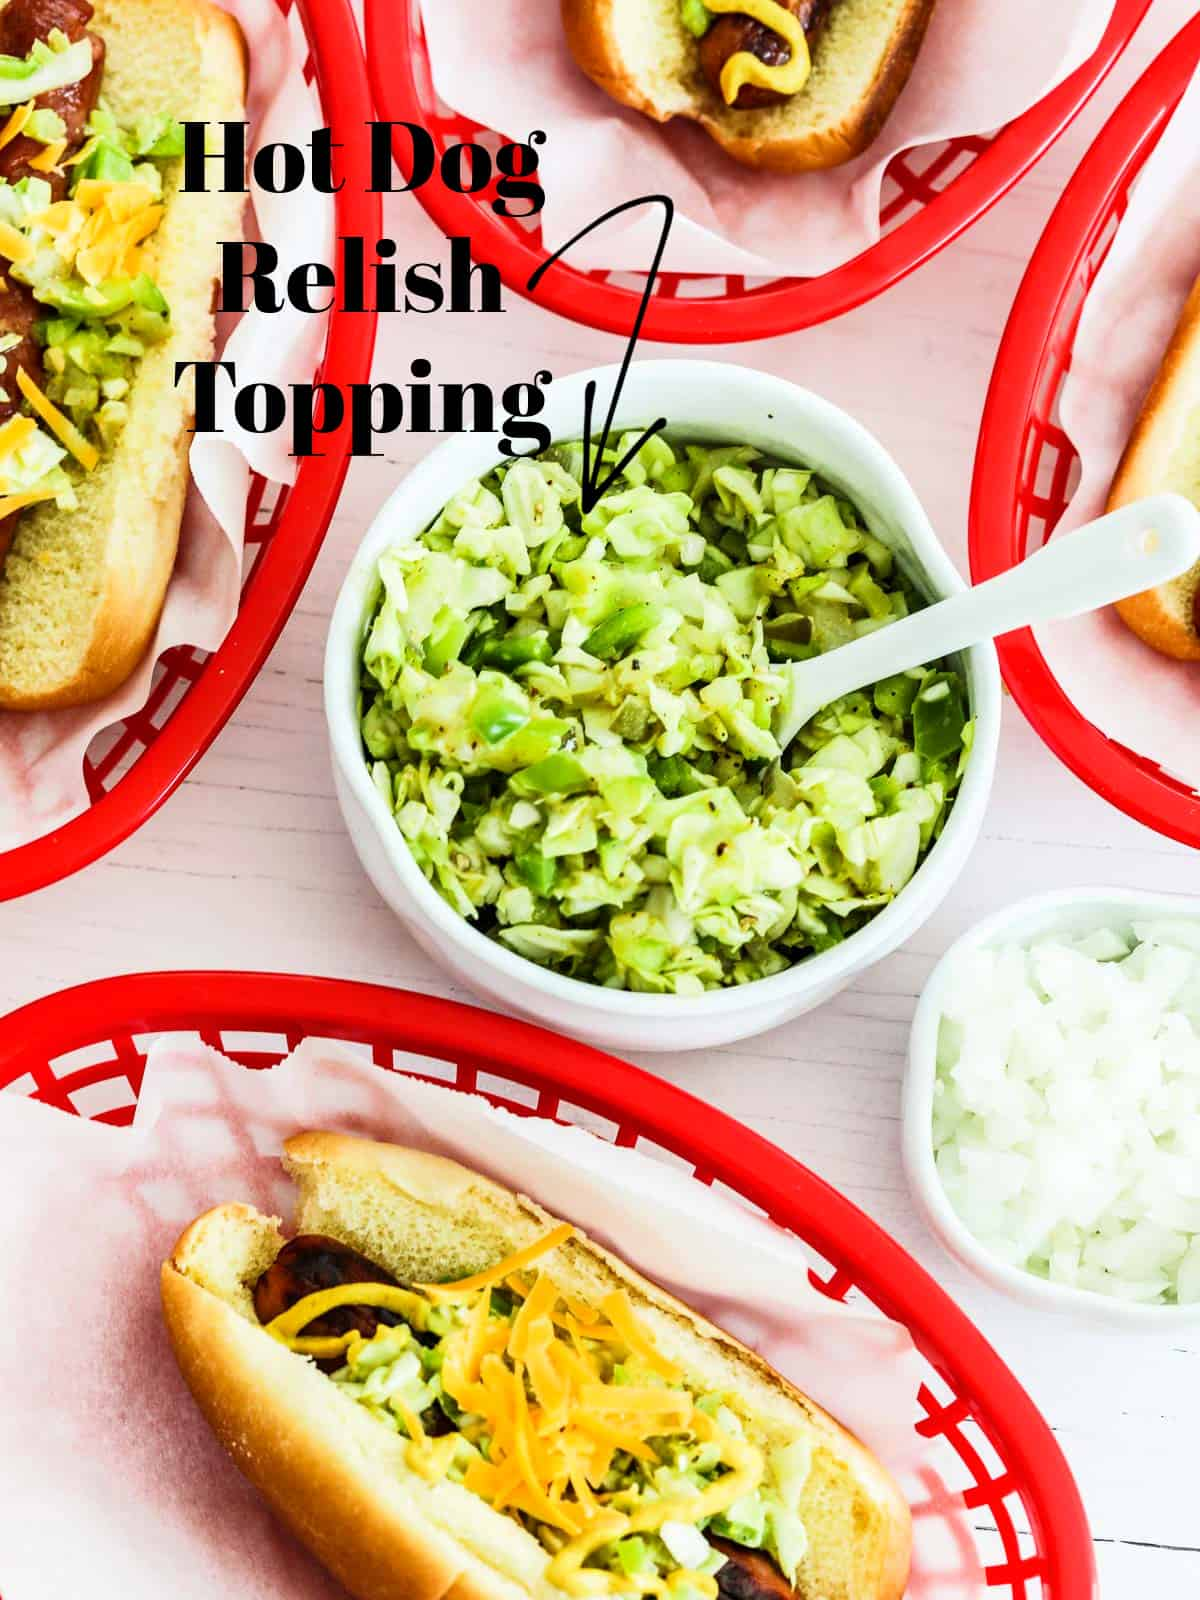 A white bowl filled with hot dog relish topping and red plastic baskets filled with grilled hot dogs.